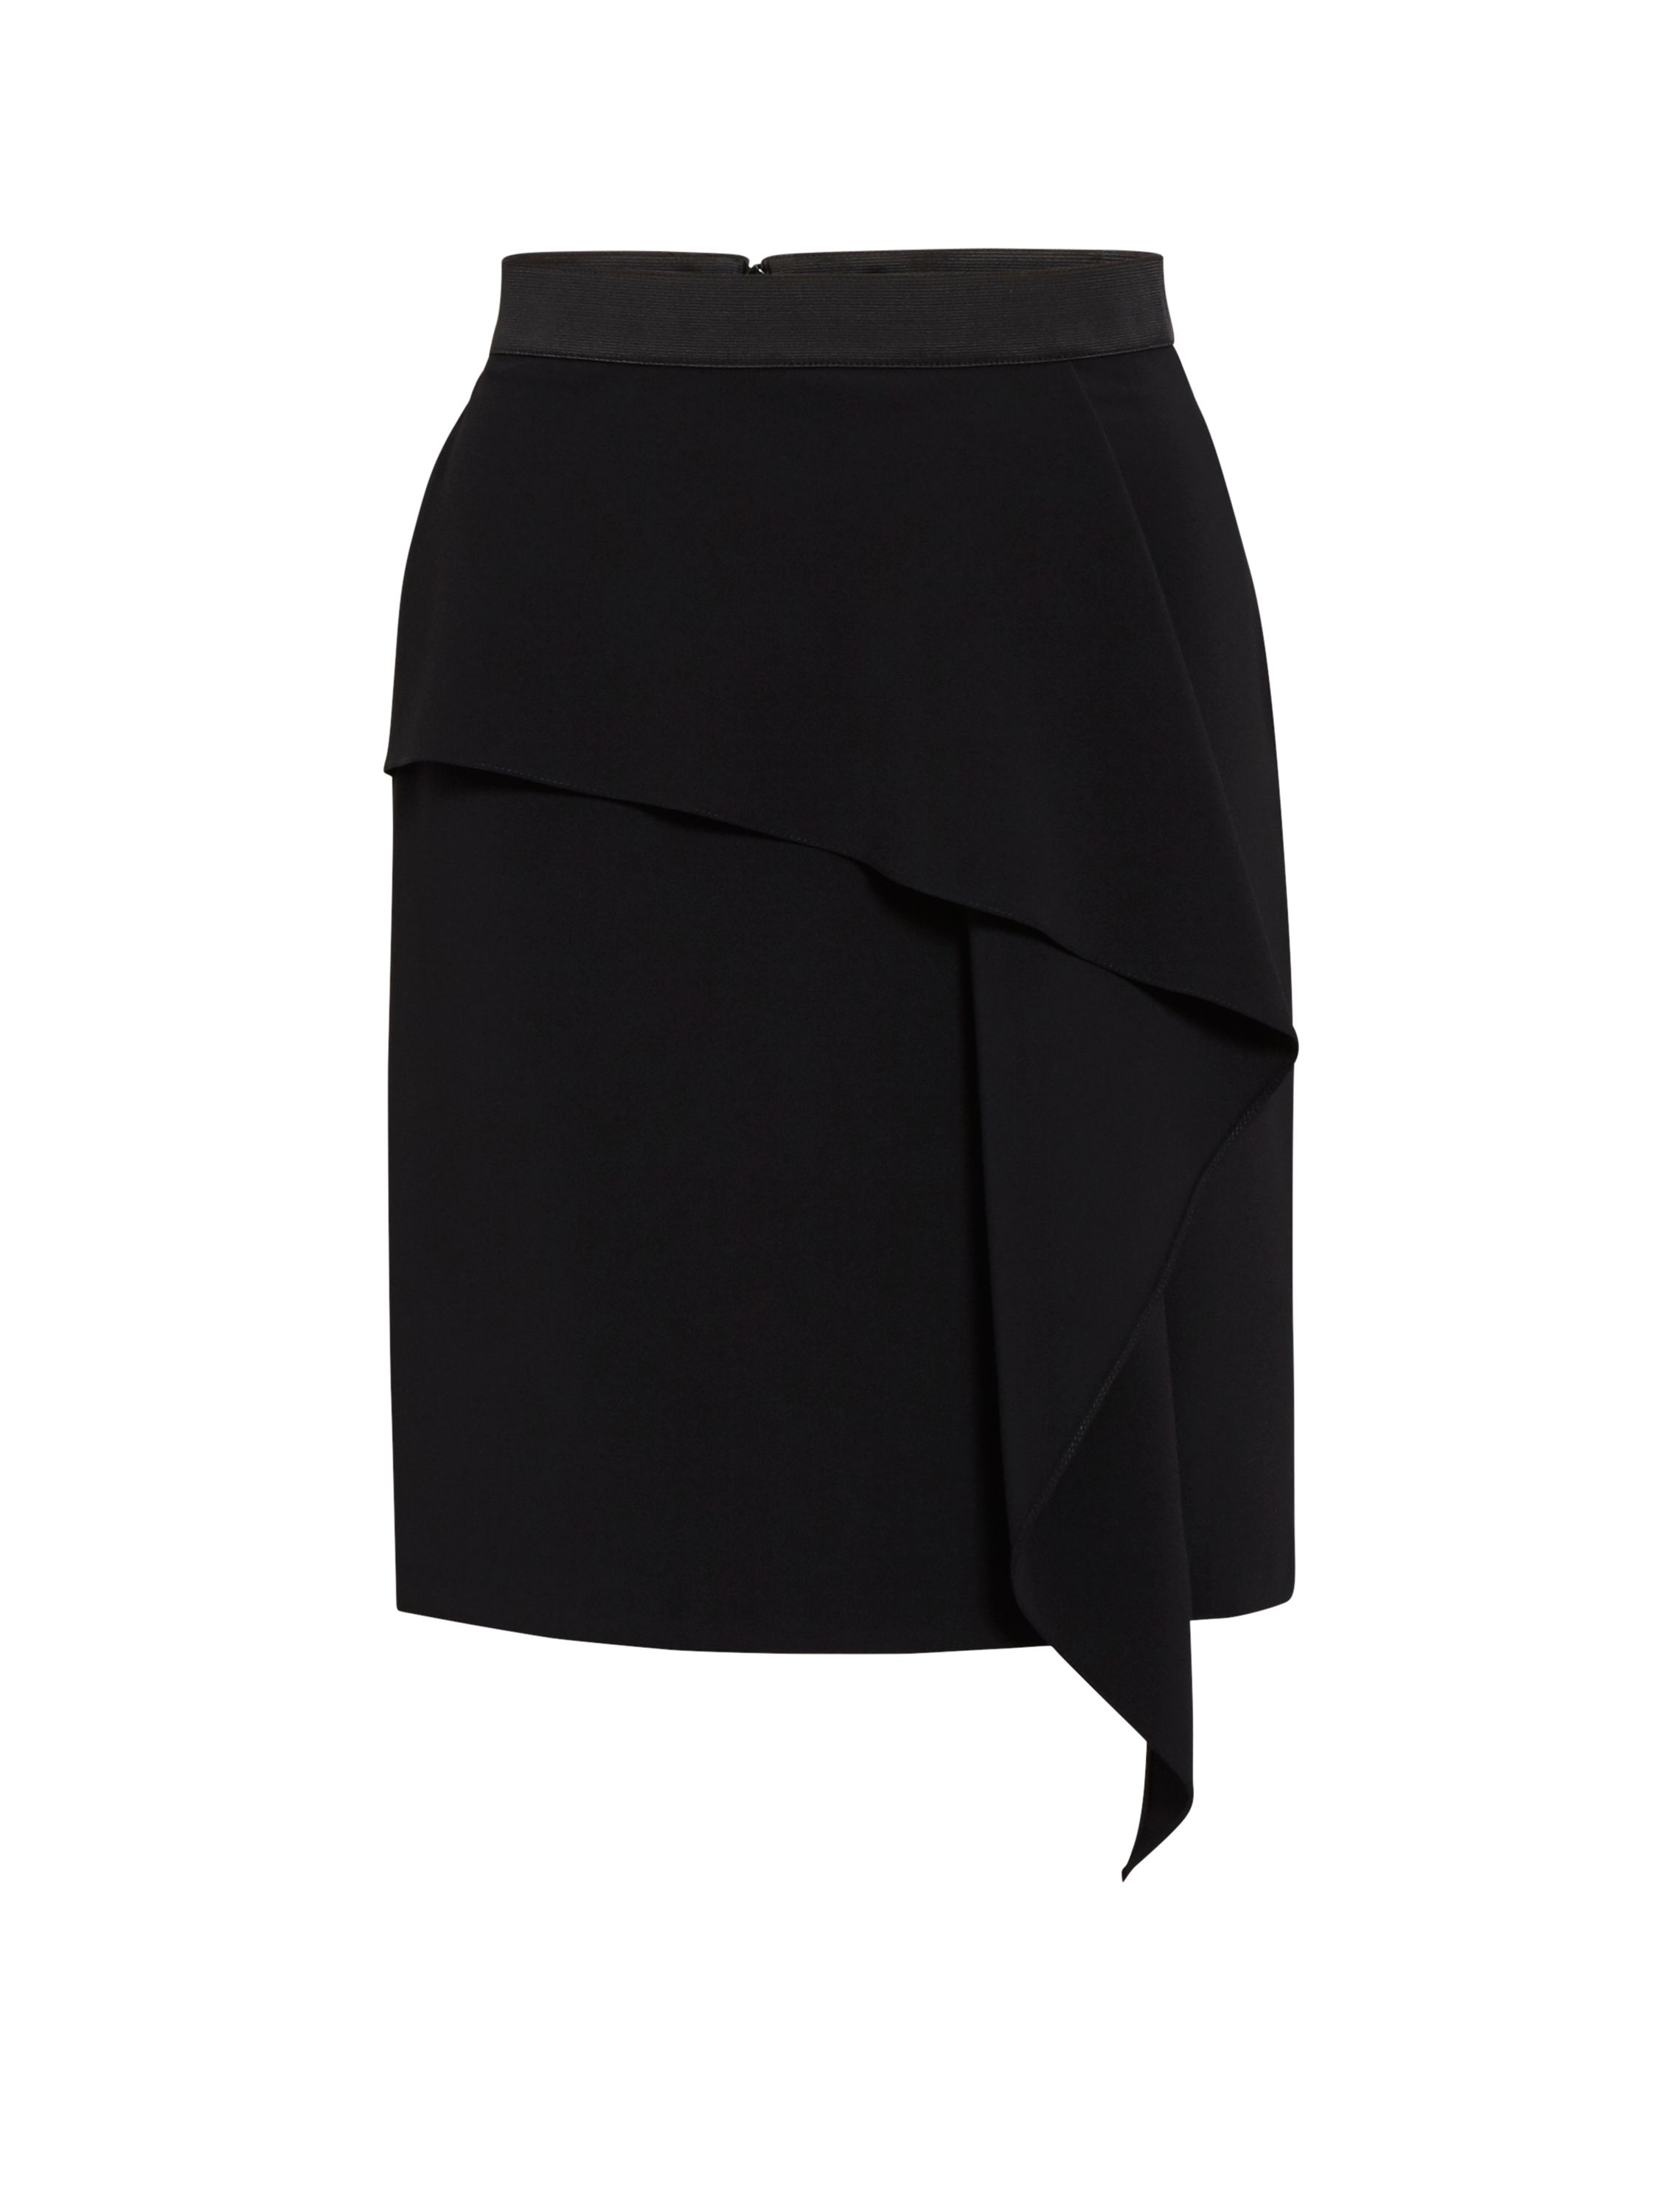 Gina Bacconi Moss Crepe Skirt With Waterfall Effect, Black